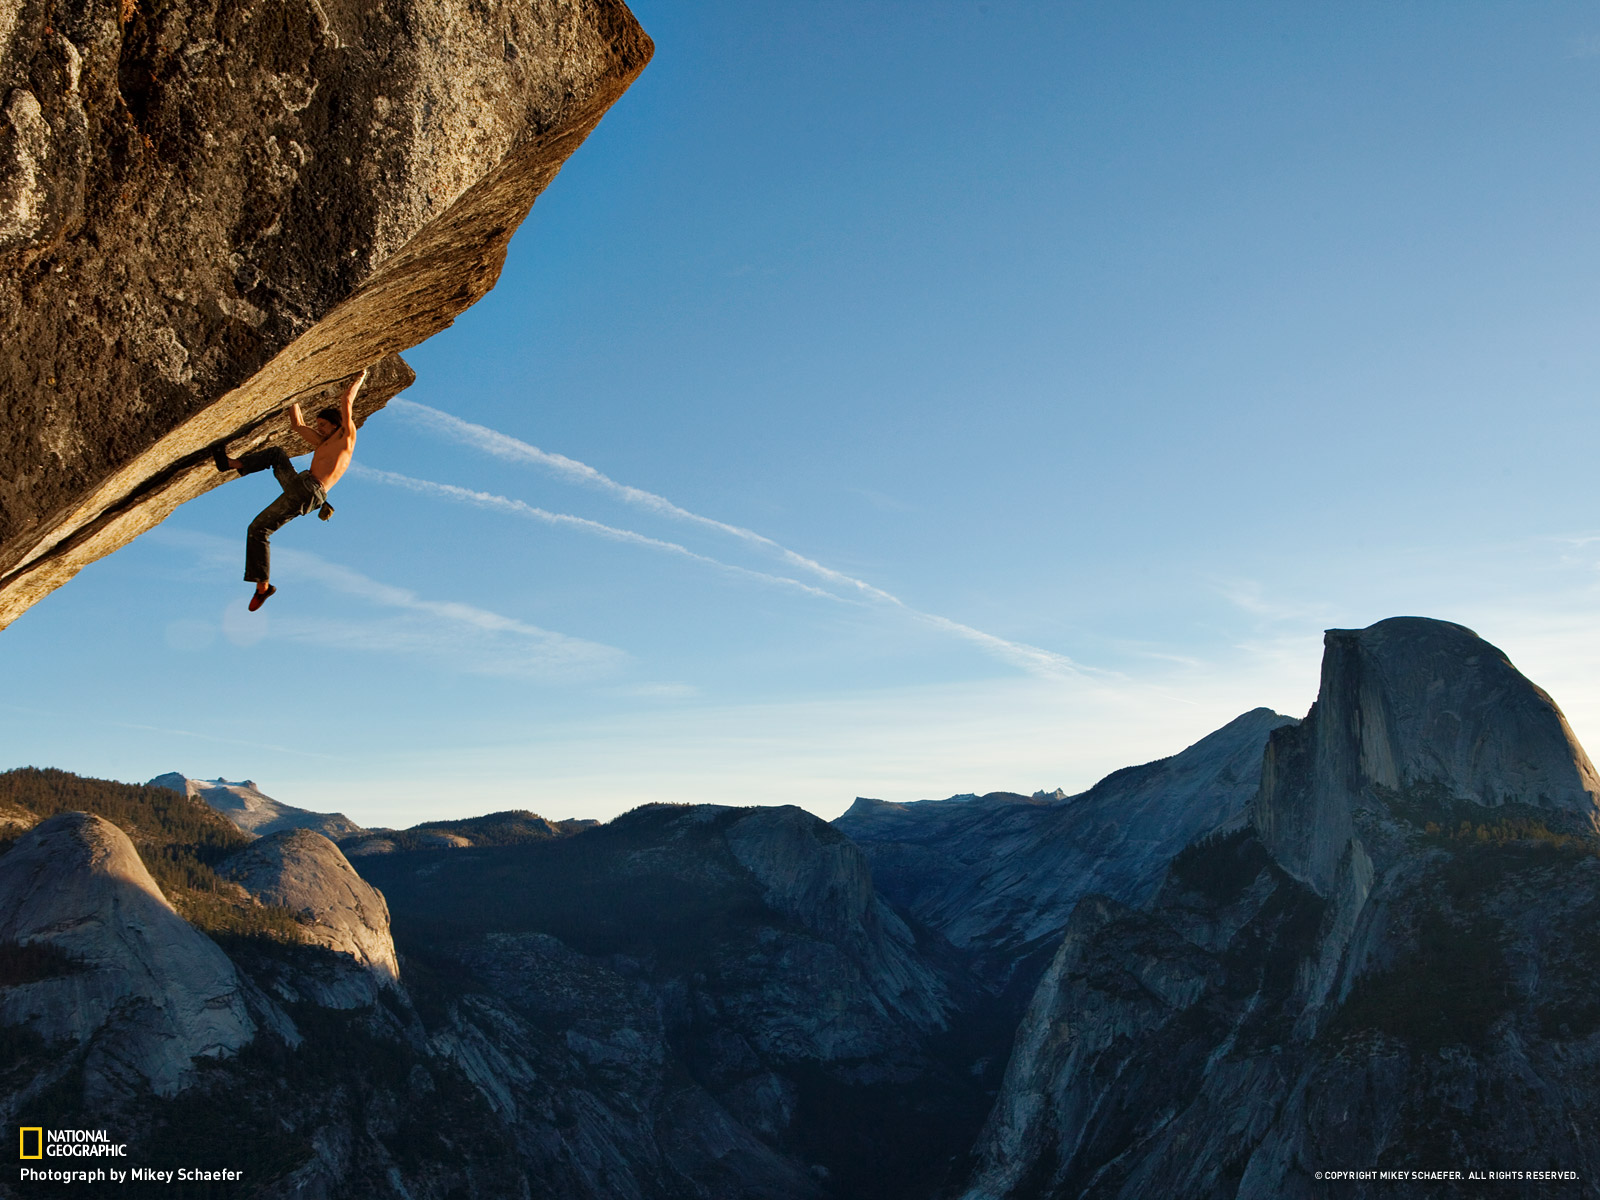 Climbing cliffs National Geographic wallpaper | 1600x1200 ...